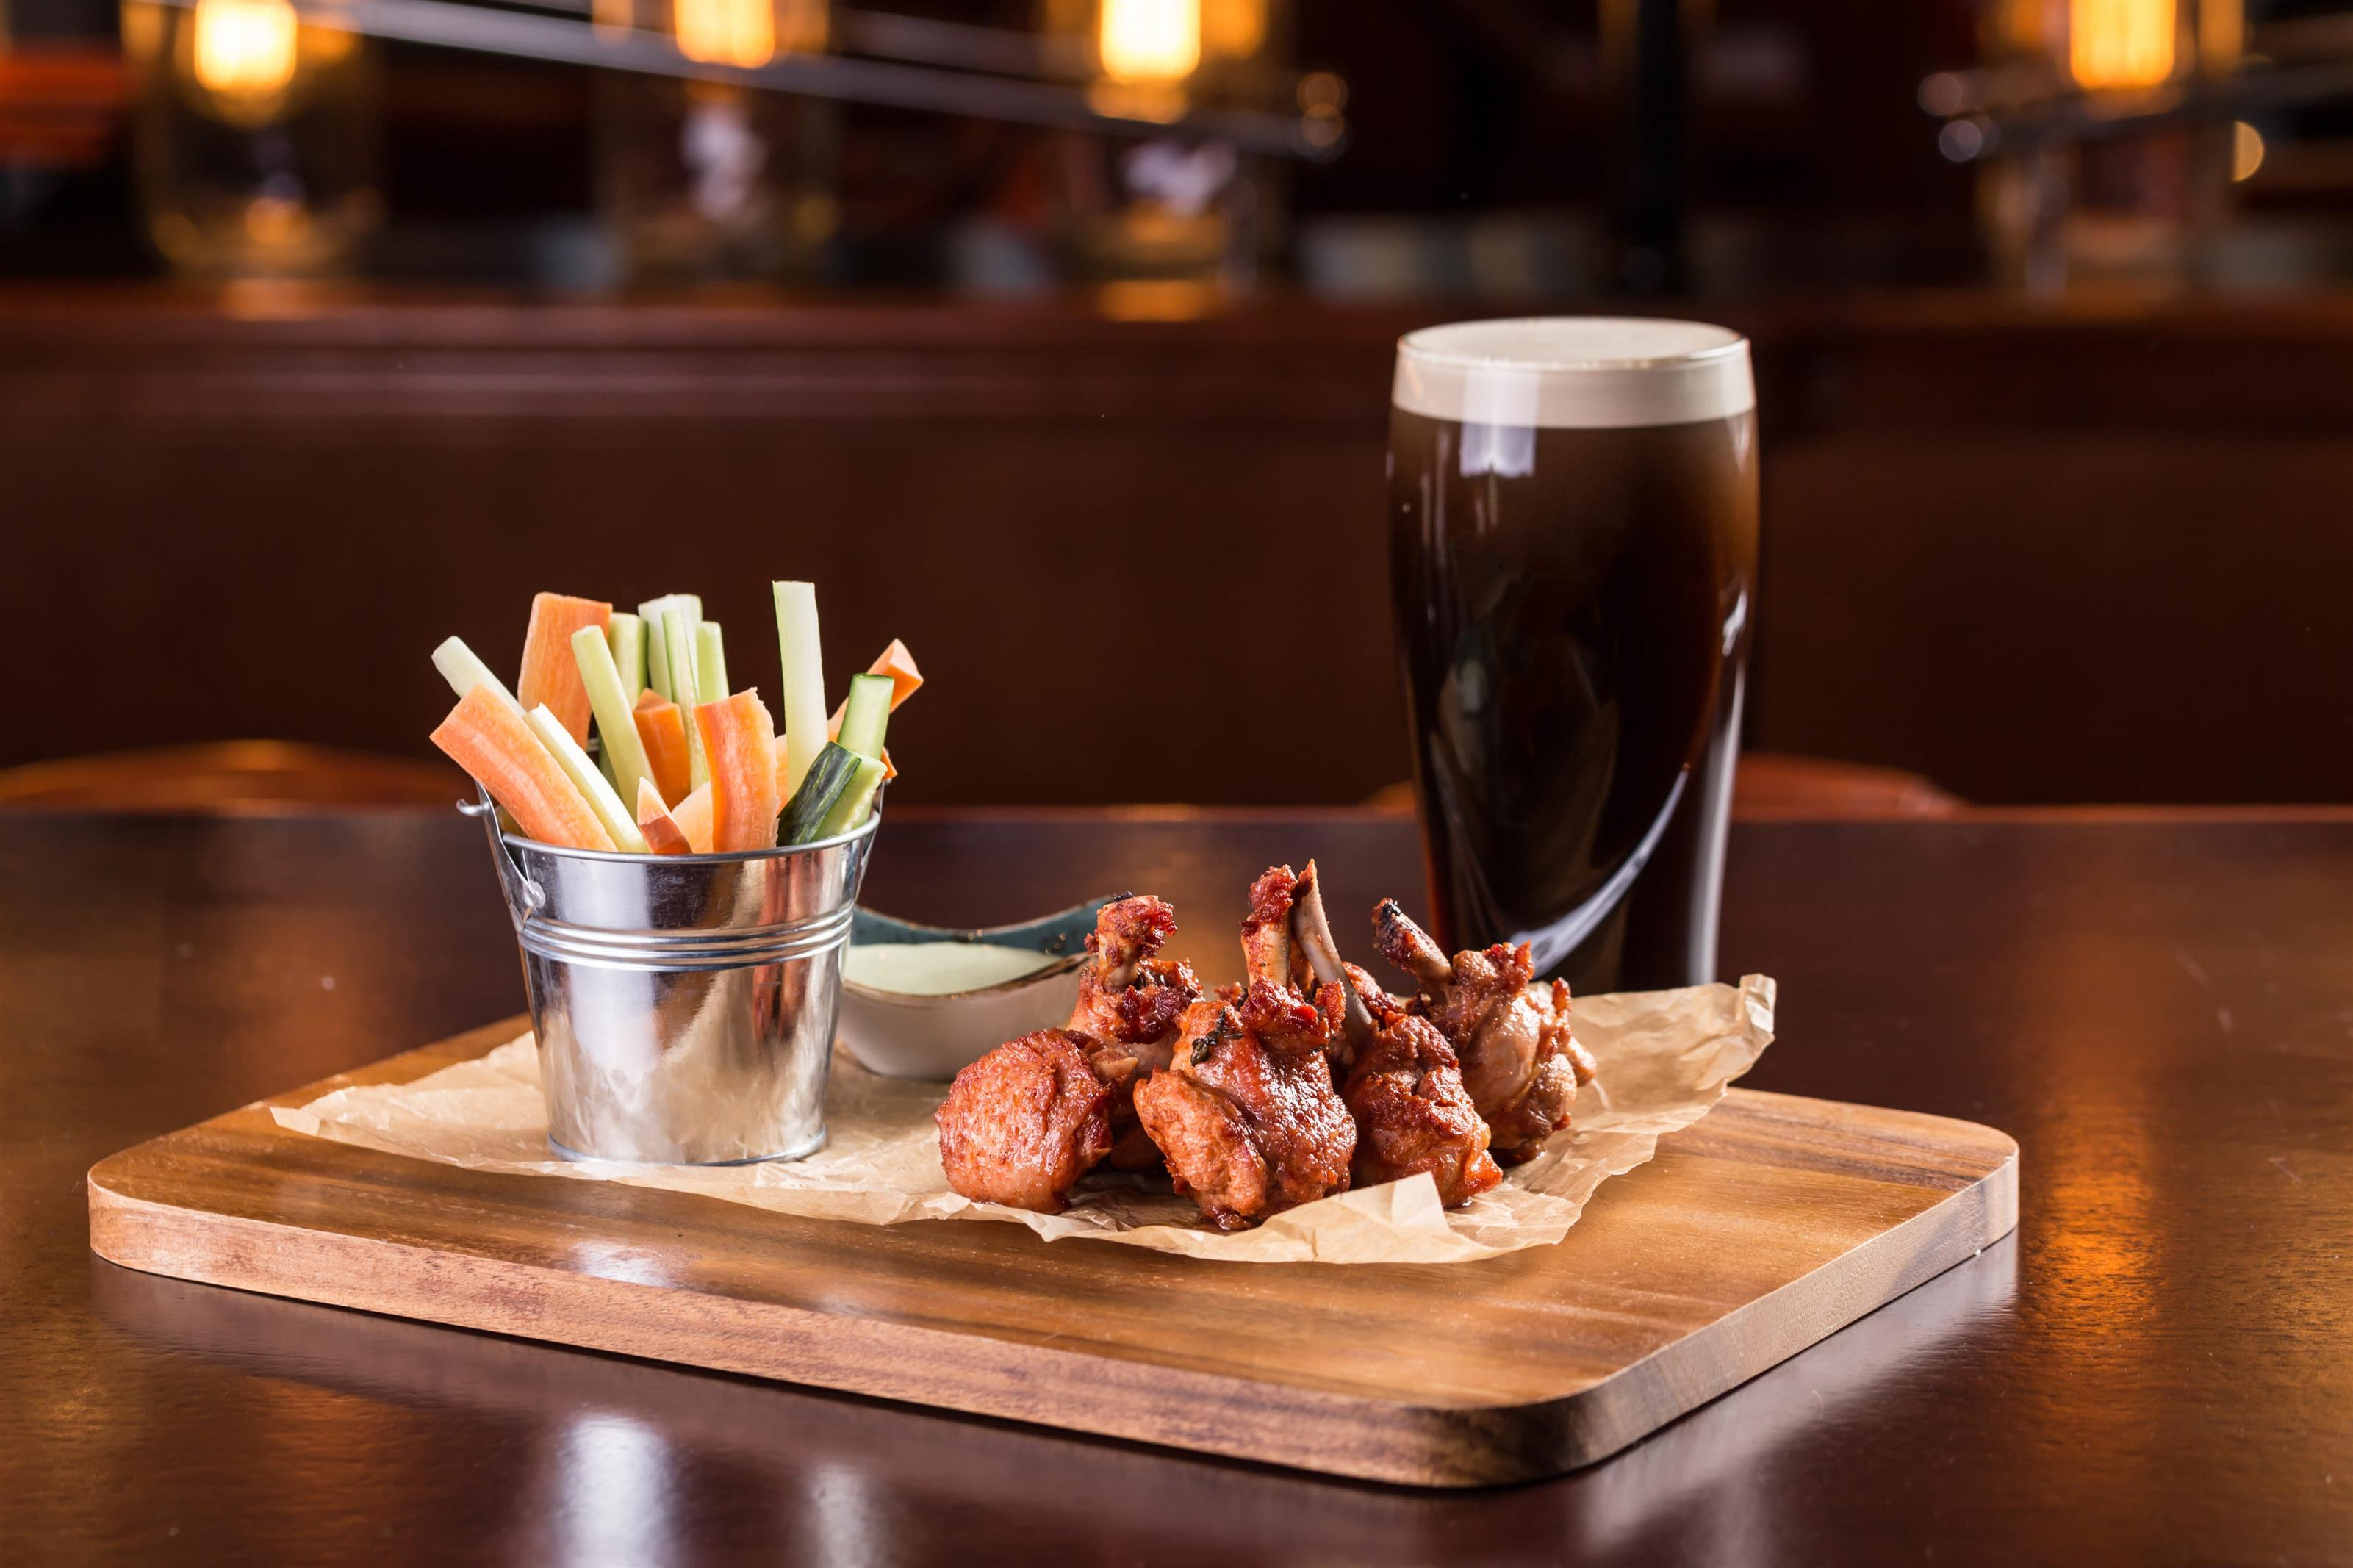 a tray of chicken wings with a side of carrots and celery with a pint of dark beer